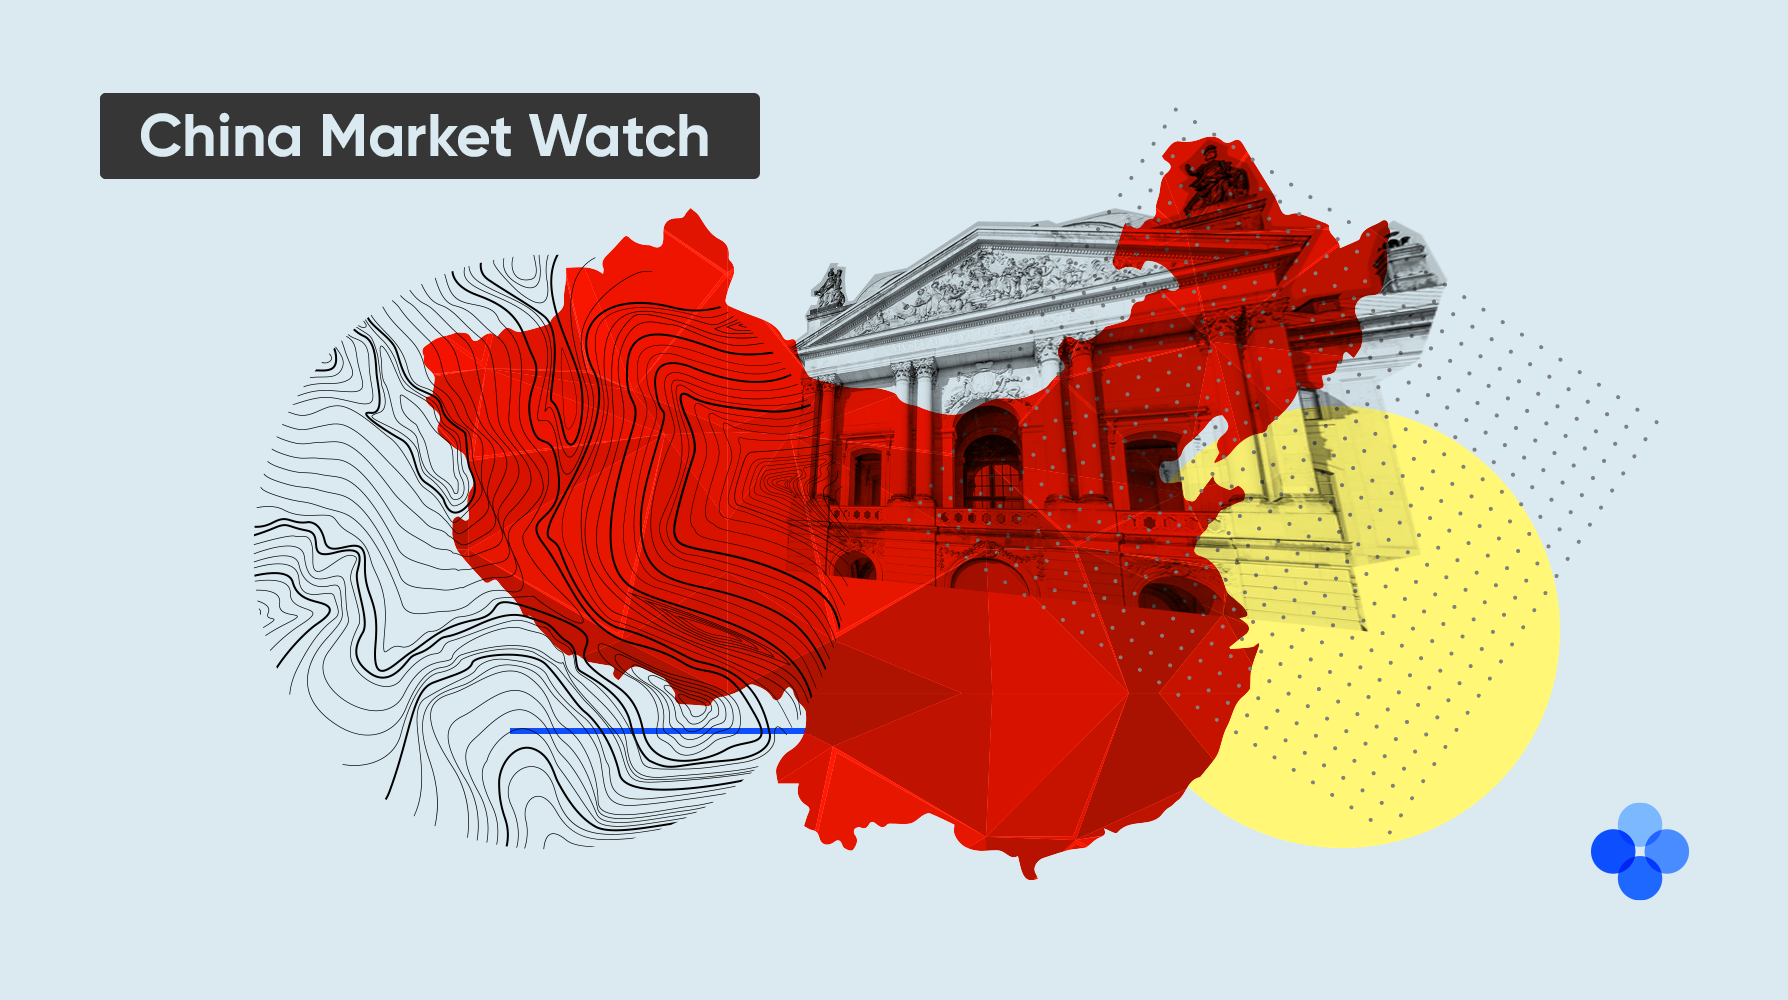 China Market Watch cover image